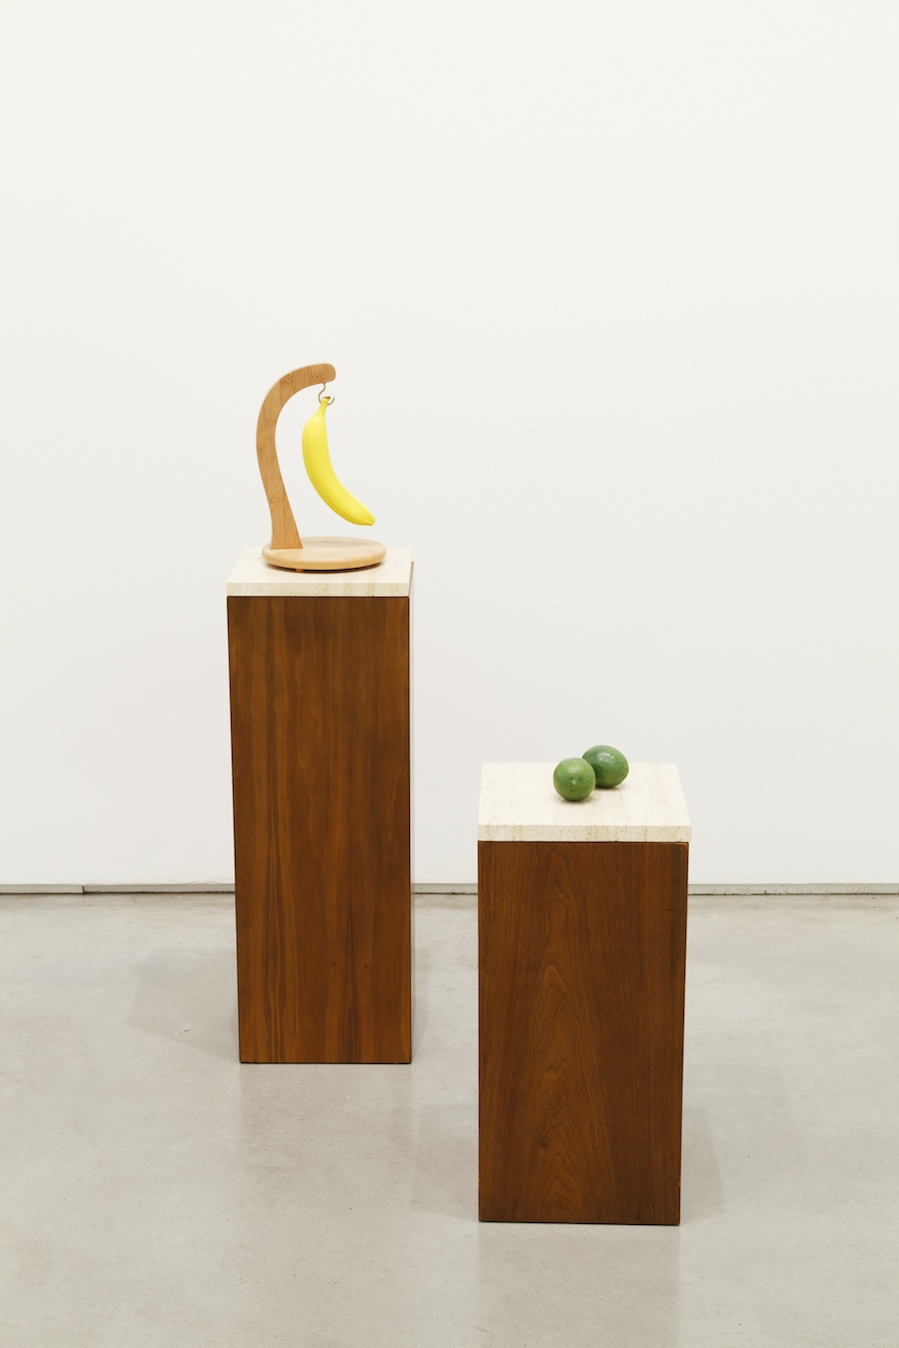 Margaret Lee, Hanging Banana and Two Limes, 2013, 2 pedestals, plaster, acrylic paint, banana holder, variable